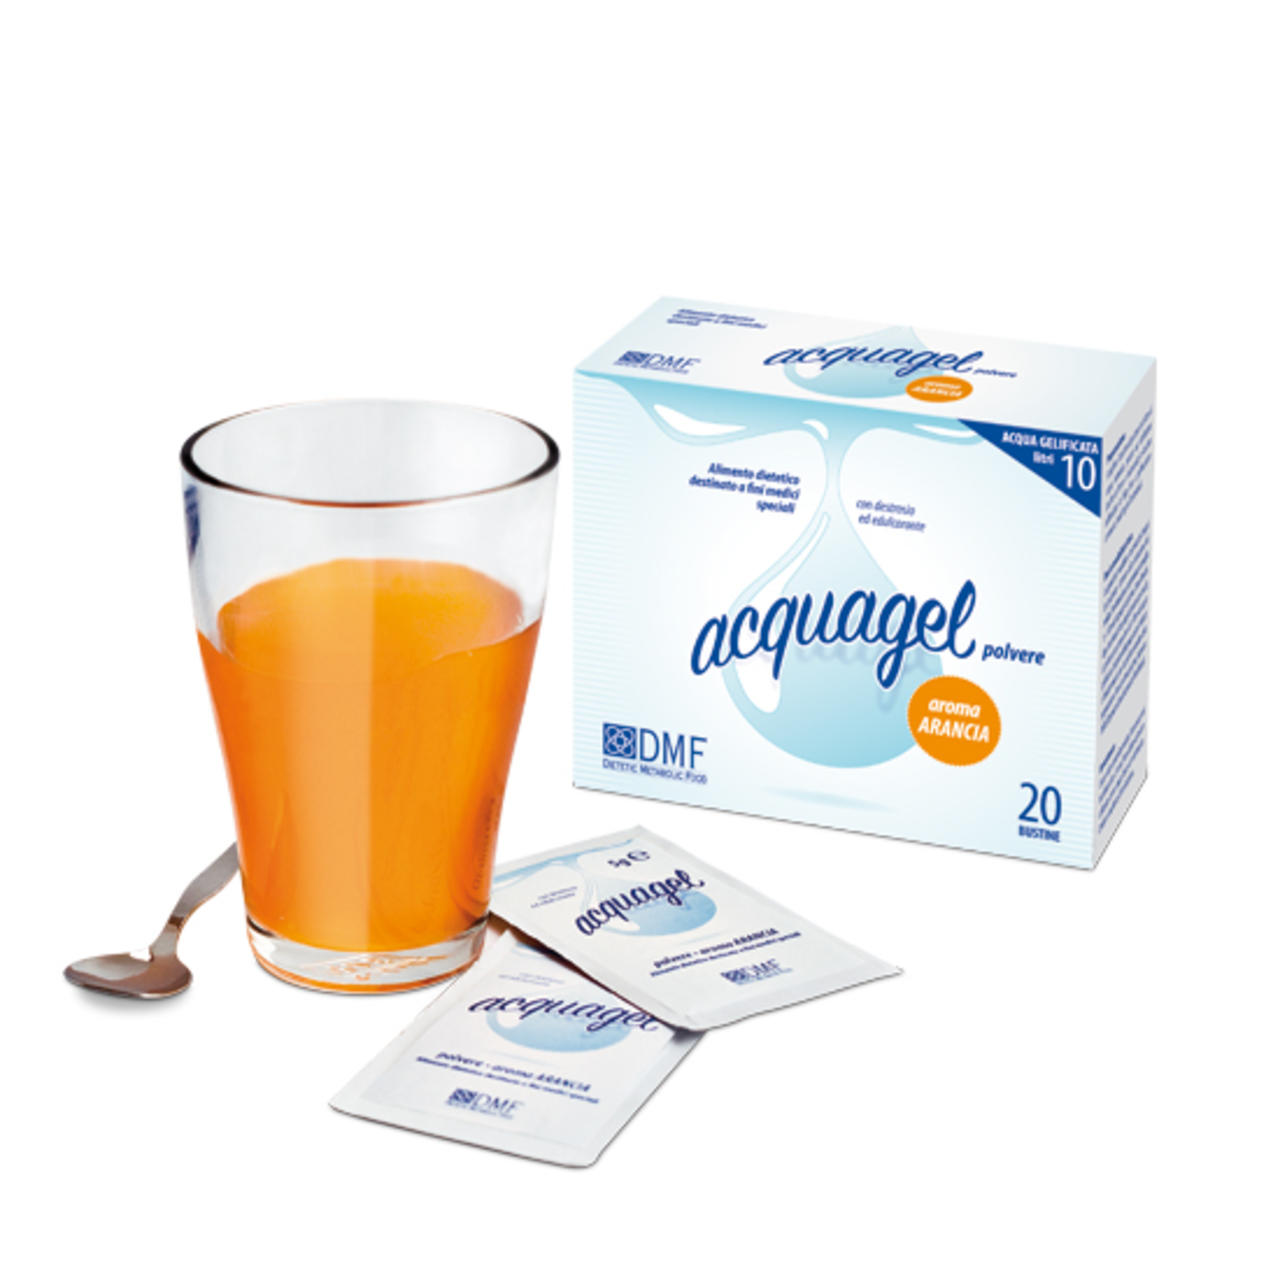 Acquagel Arancia 20bs X 5g